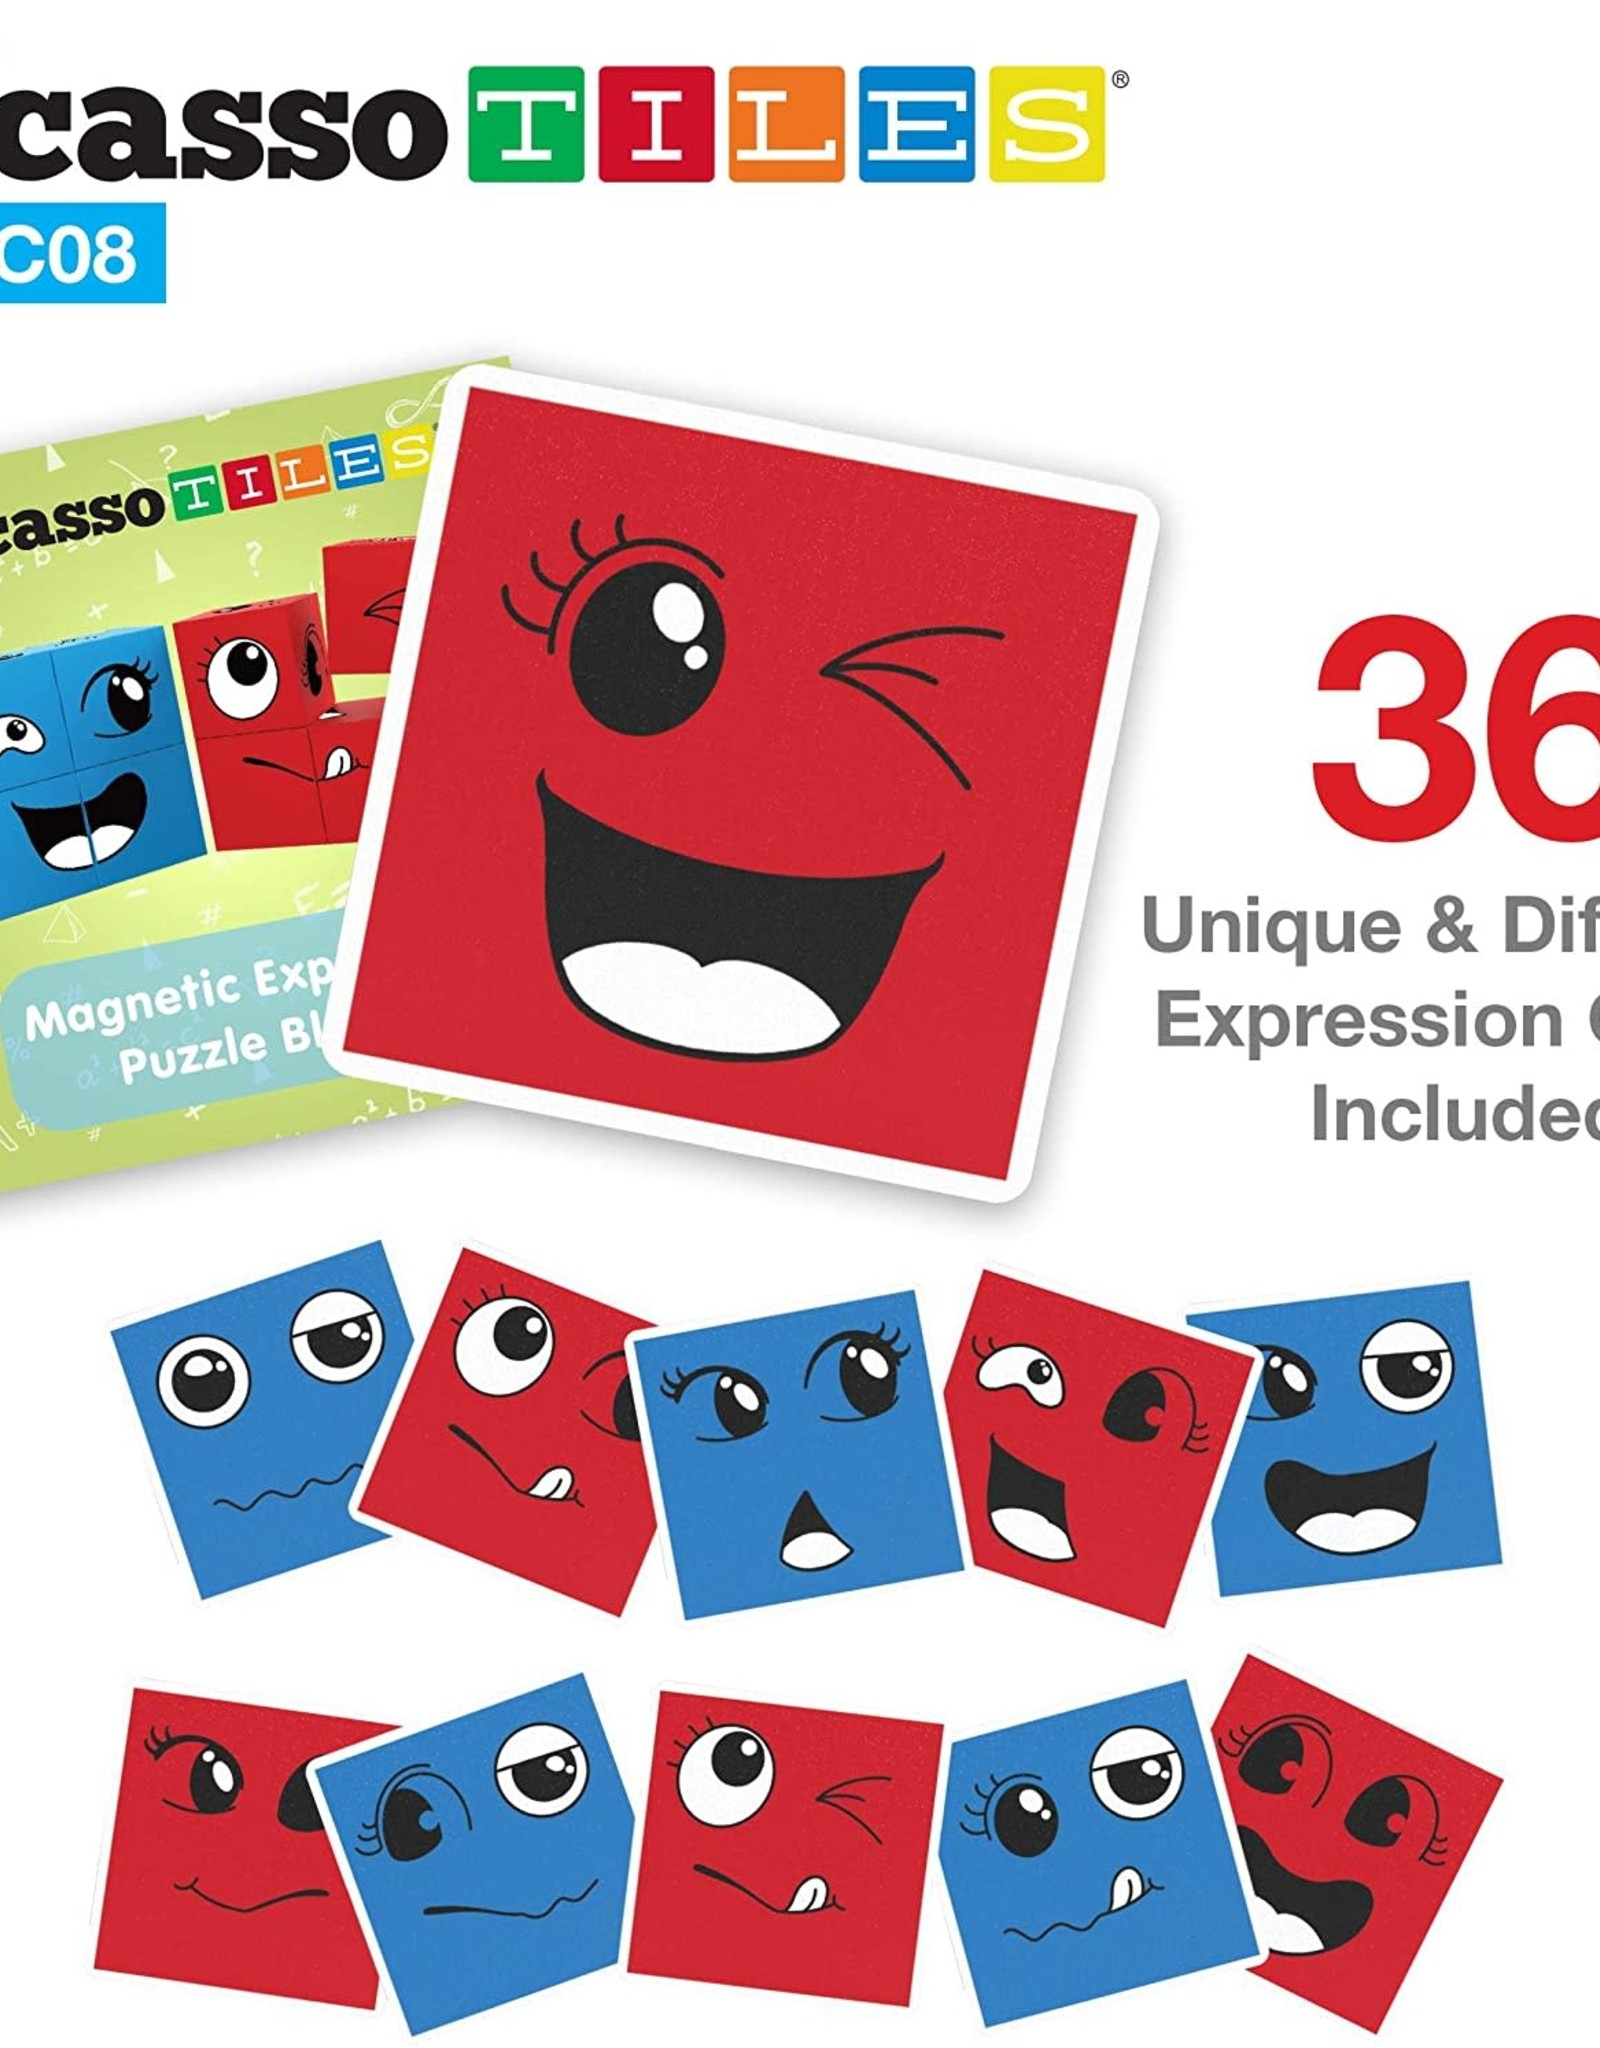 Picasso Tiles 8 Pc Magnetic Cube Emotion Mix & Match